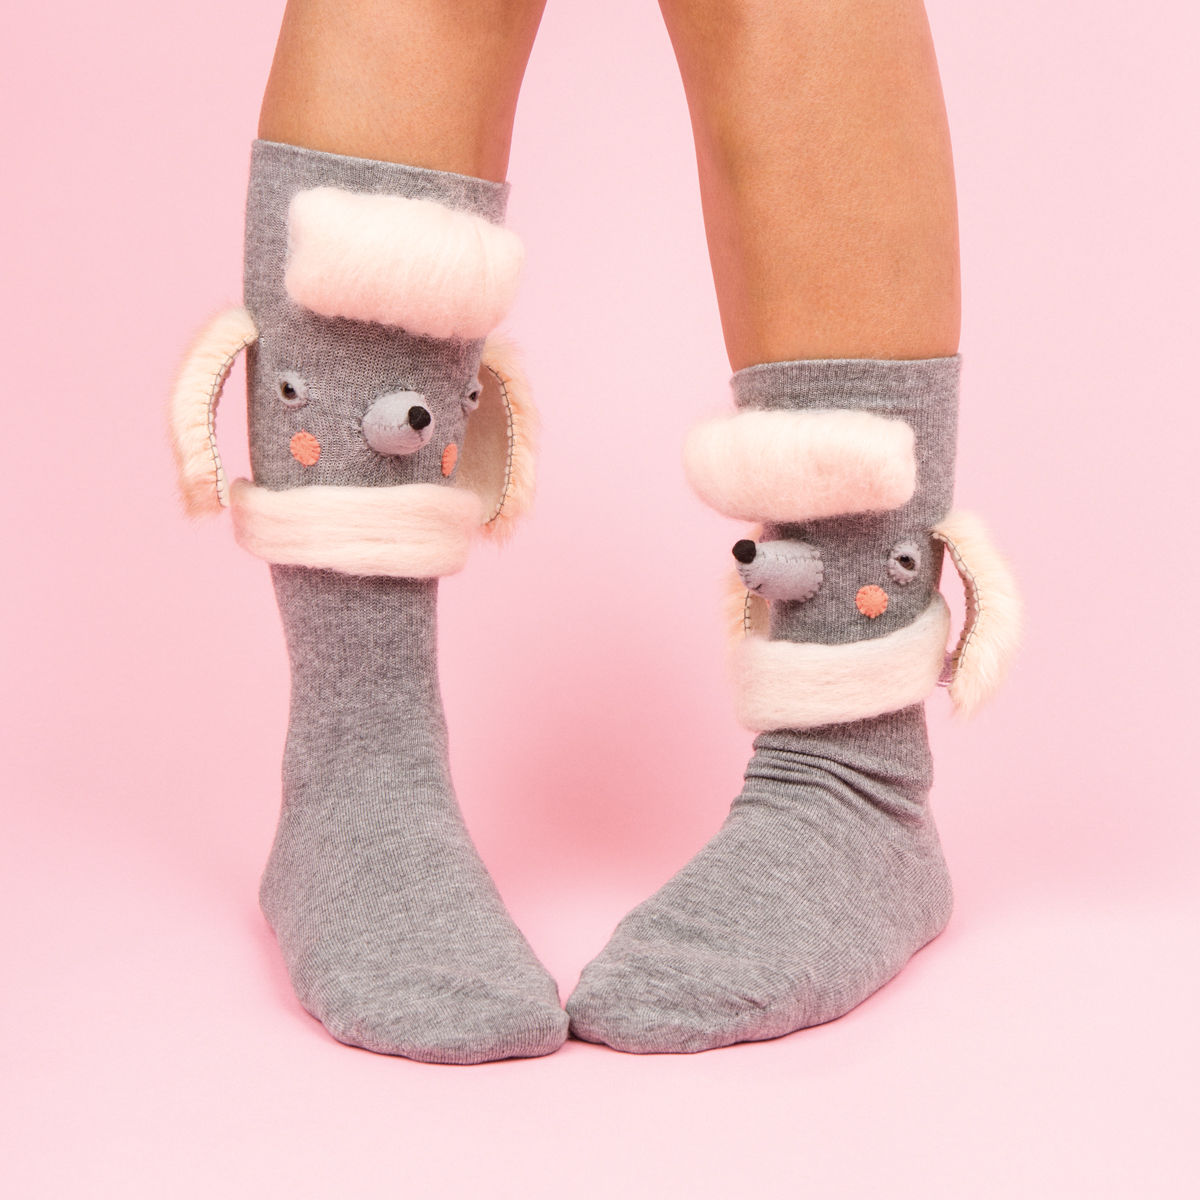 FrankieMag must-have socks poodle http://weirdatheart.com/absolutely-must-have-socks/